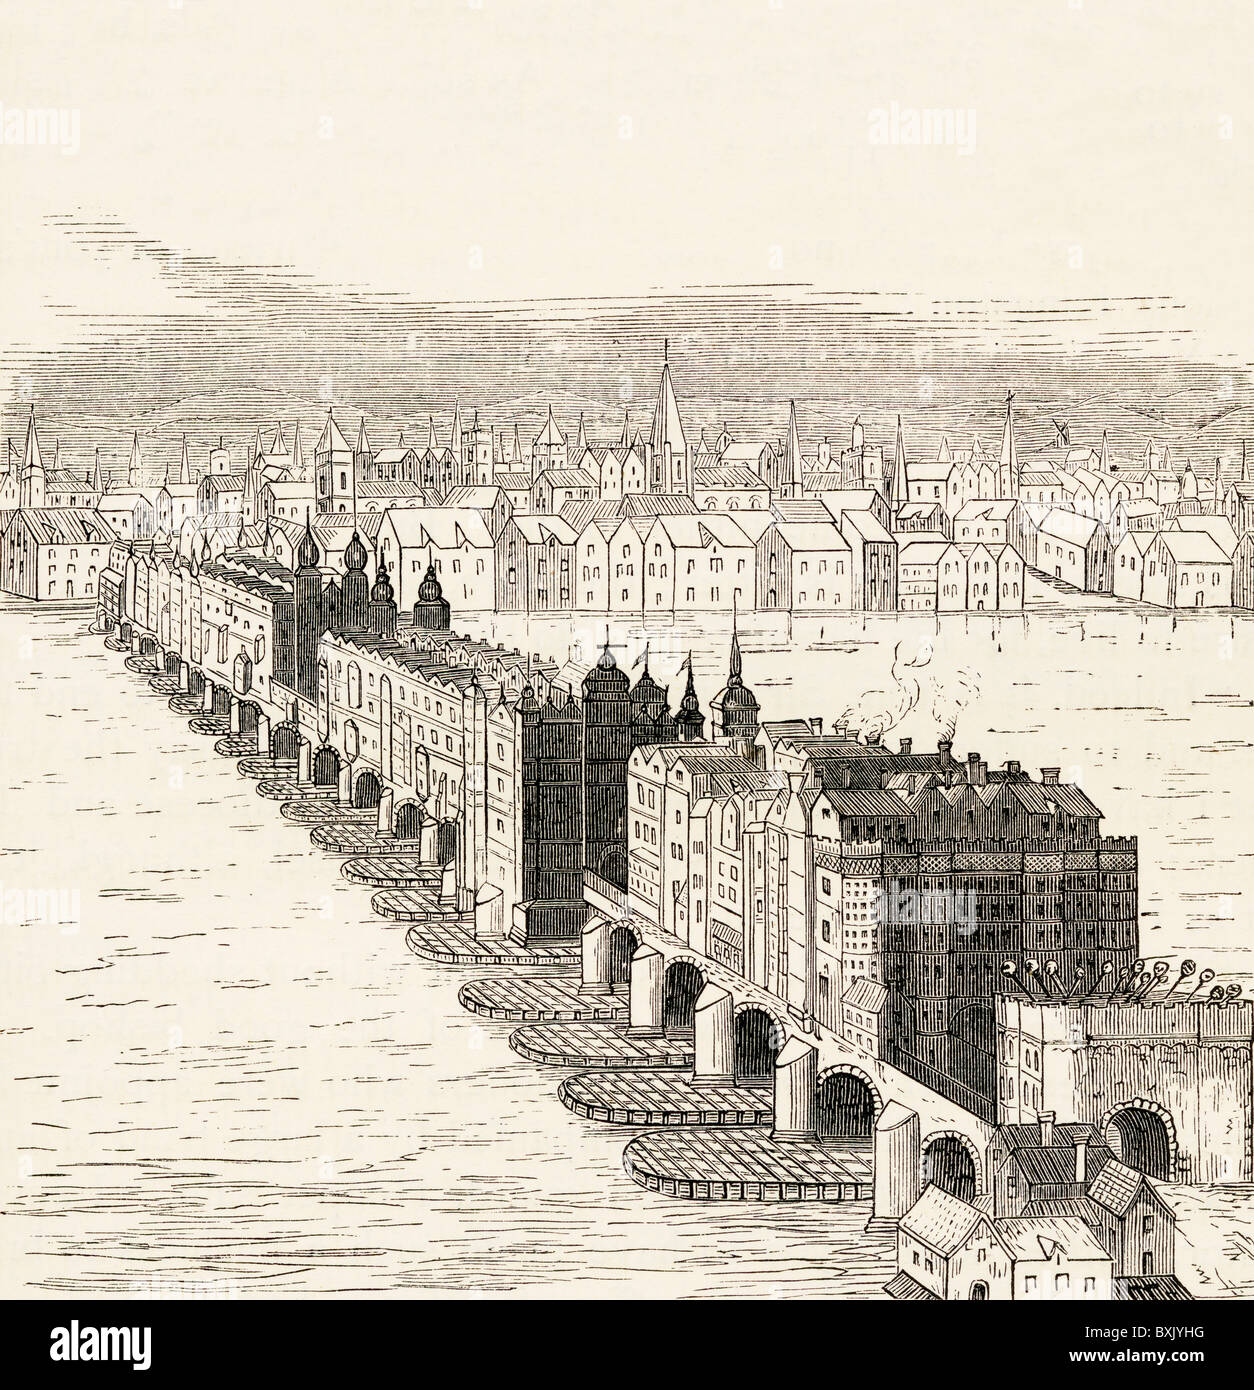 Old London Bridge, London, England before the Great Fire of 1666.